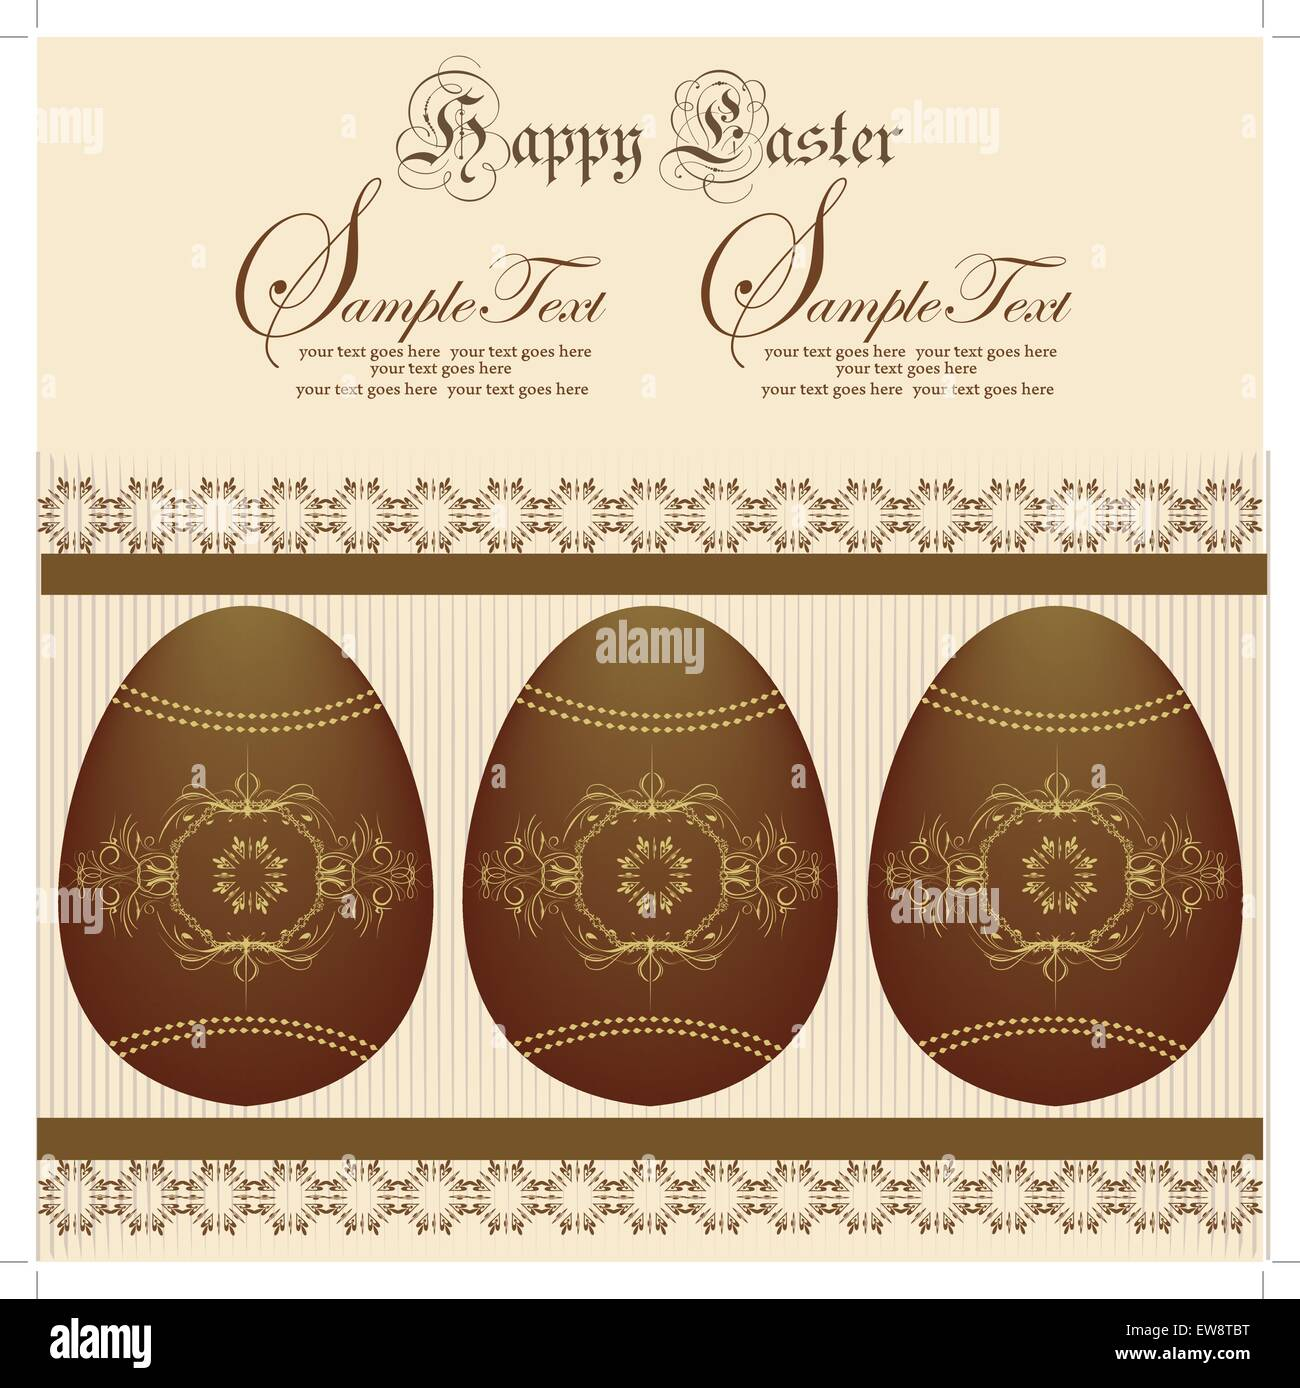 Vintage easter invitation card with ornate elegant abstract floral design, brown eggs on yellow. Vector illustration. Stock Vector